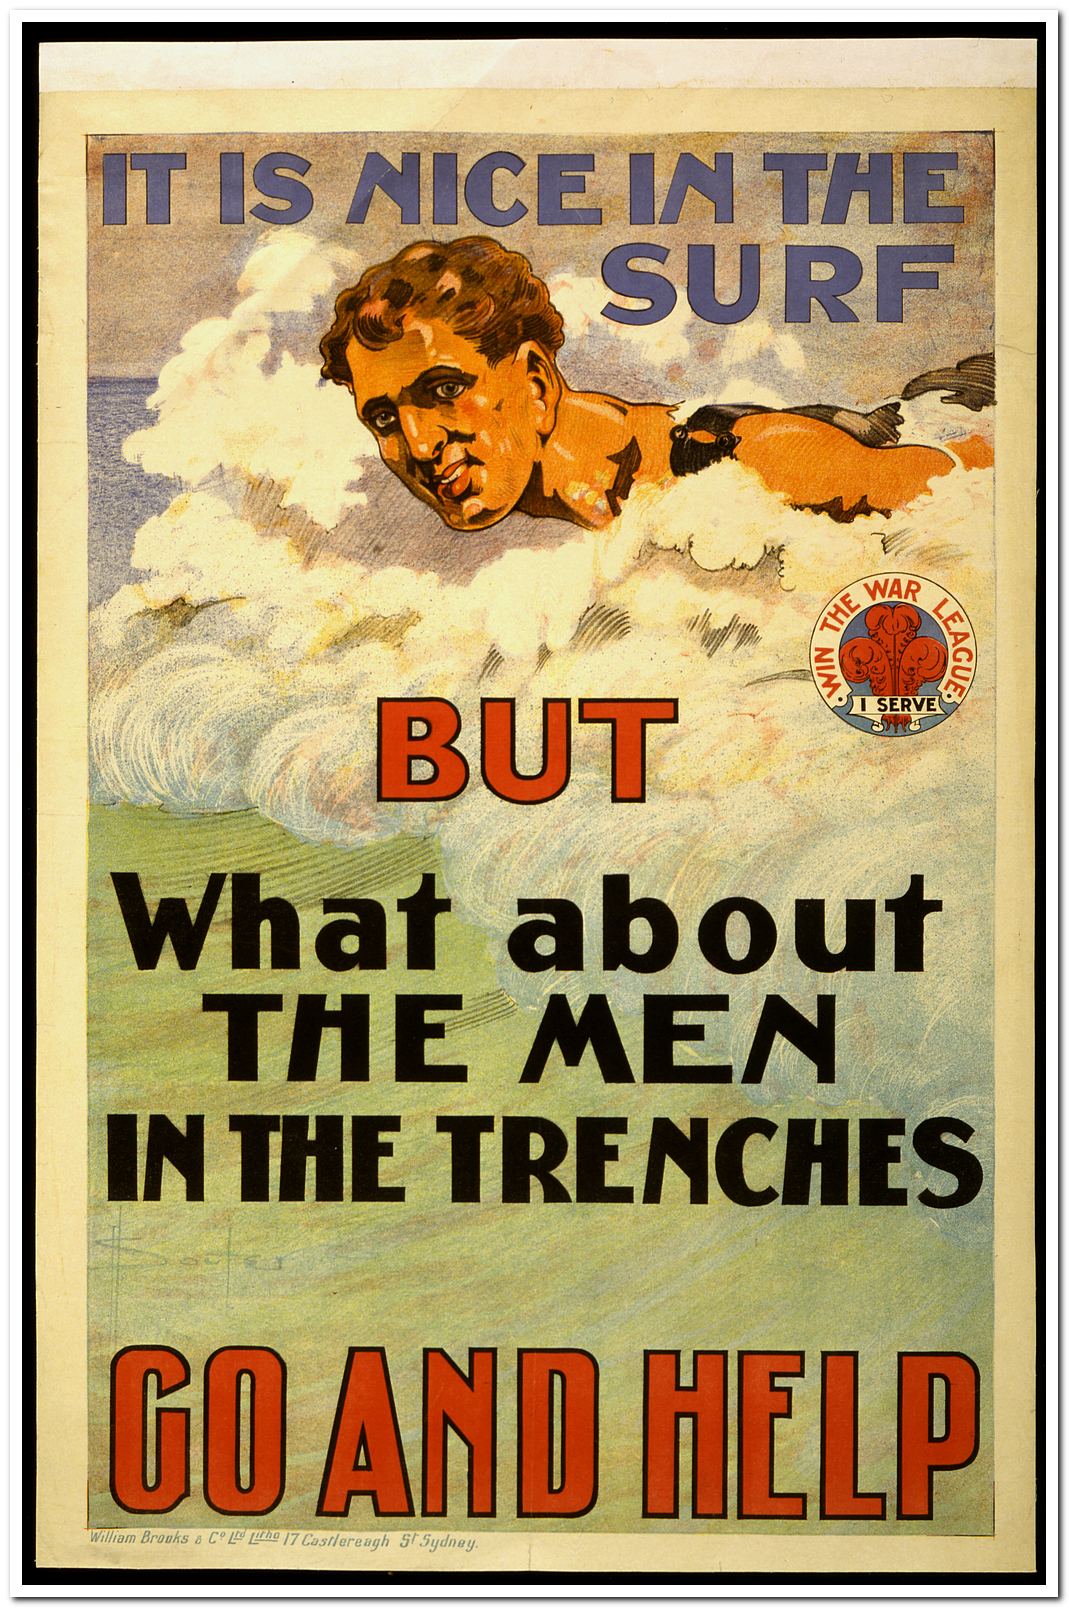 This 1917 Australian Poster Is Representative Of Many Used To Recruit Volunteers To Serve With The British Forces In World War I Australian Recruitment Drives